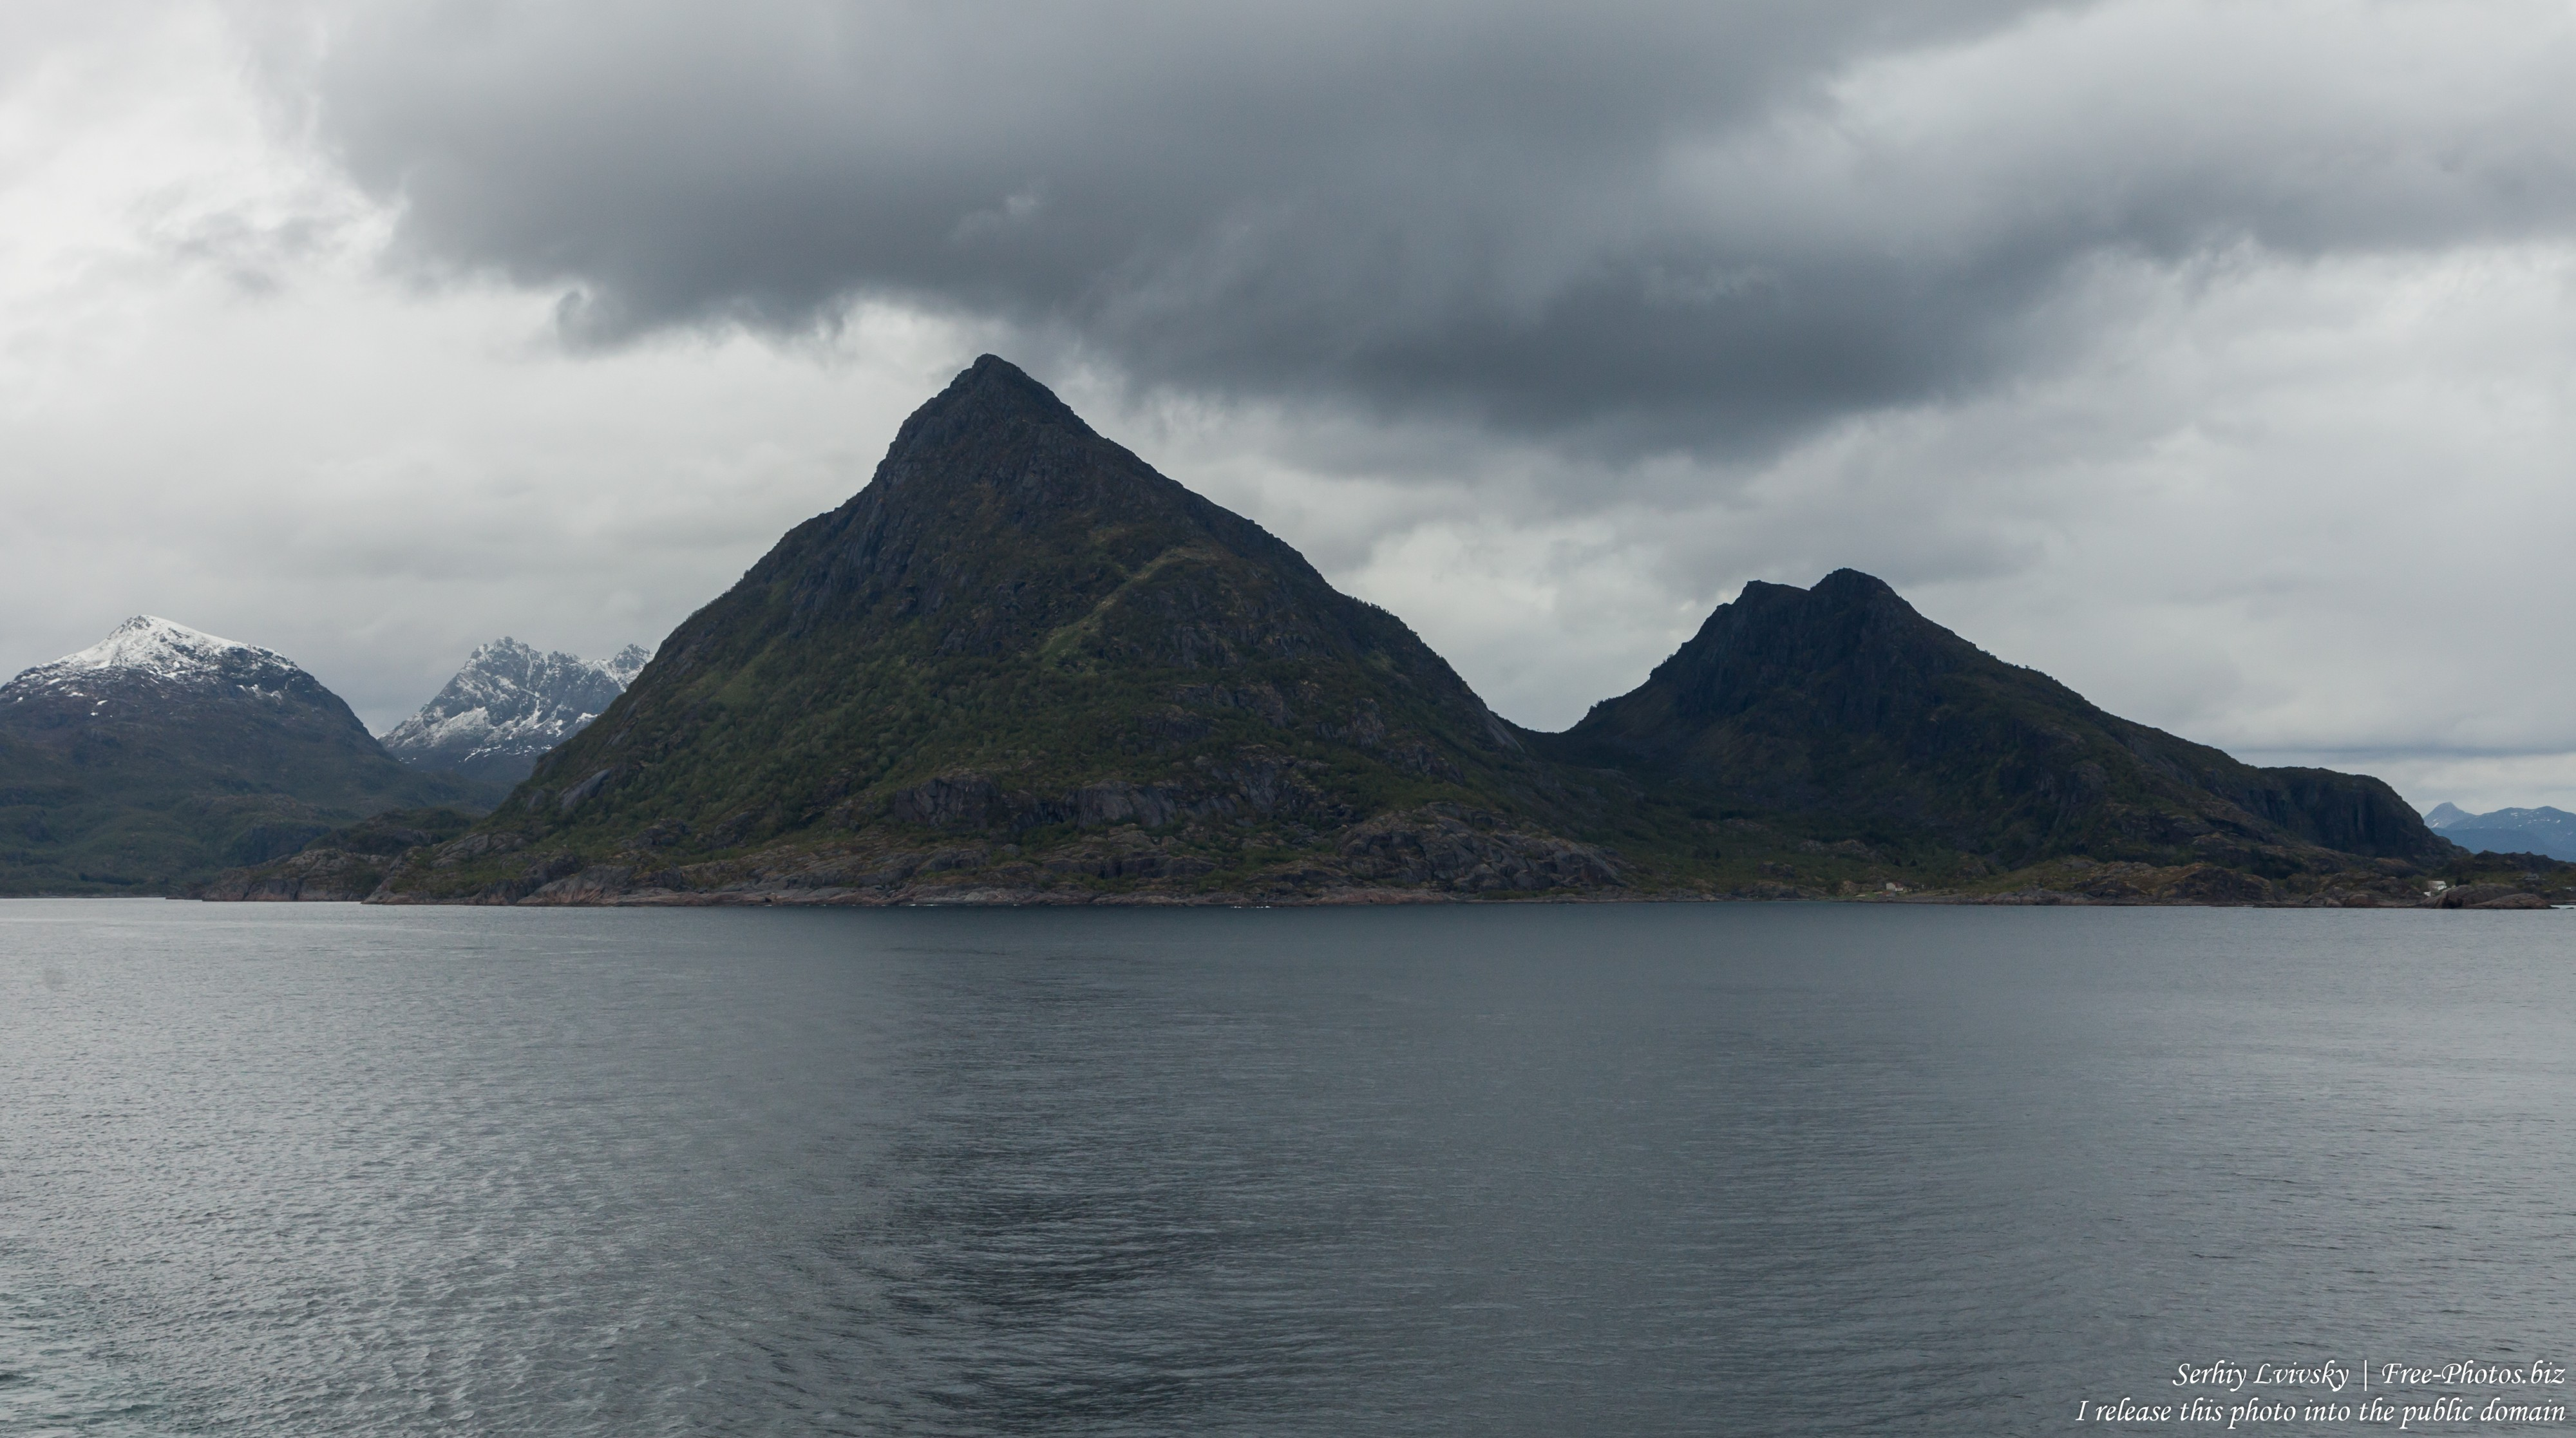 way from Trollfjord to Svolvaer, Norway, photographed in June 2018 by Serhiy Lvivsky, picture 8